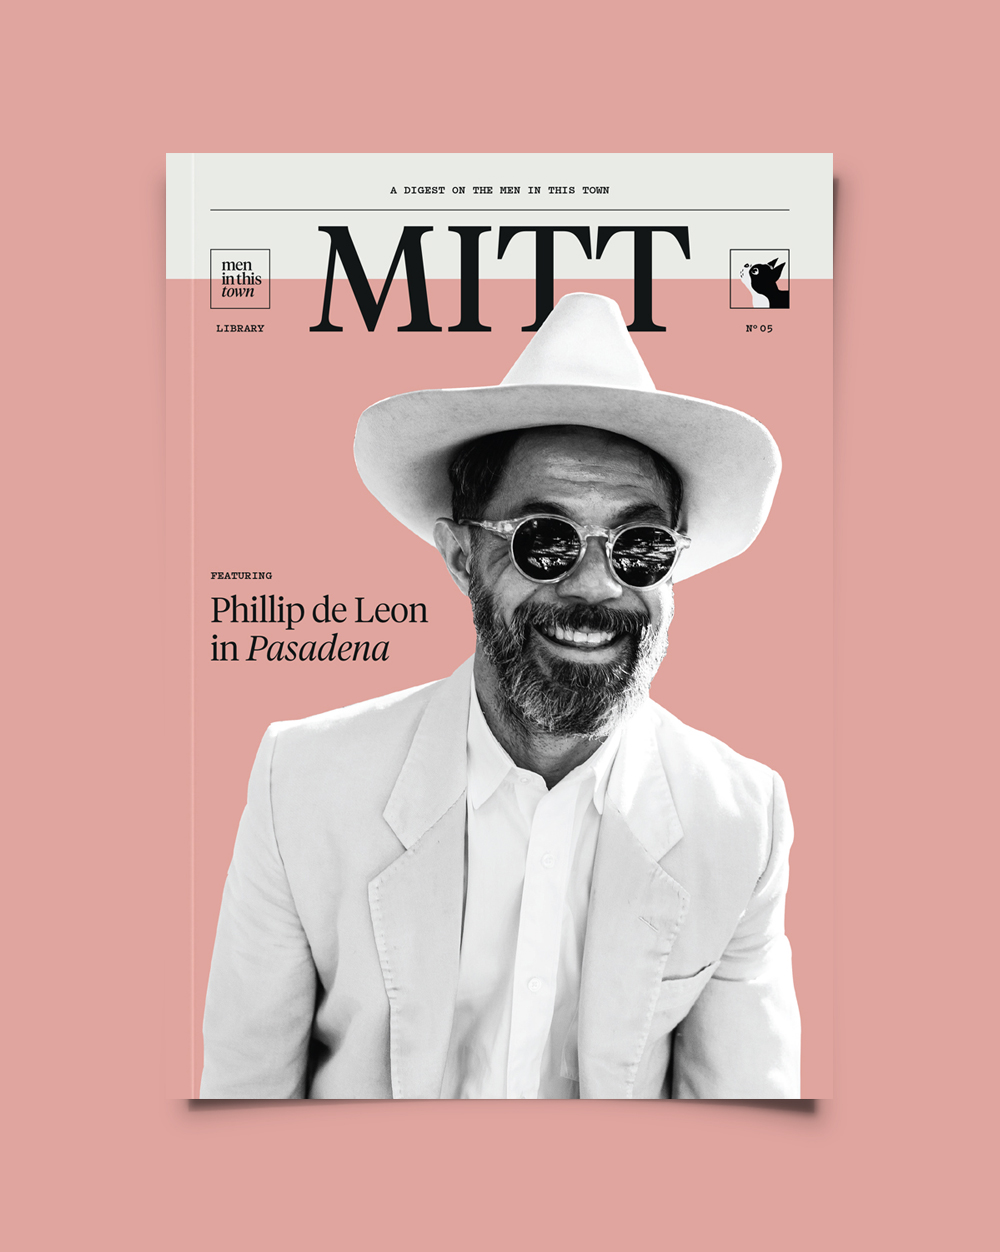 I'm so excited to finally reveal the fifth cover of MITT magazine, featuring Phillip de Leon, photographed by Jeremy Perkins in Pasadena. I cannot be more proud of this issue as a whole, with inspiring features from around the world by incredible contributors including Alan Weedon, Chris Aadland, Ryan MacDonald, Ali Asghar, François Cavelier, Katelan Cunningham, Andrew Geeves, Pakawat Hongcharoen, Kimberlee Oo and Peter Rosewarne. Thank you for making this the best issue yet! The fifth issue is now available to pre-order and will be shipping out worldwide on October 1st!